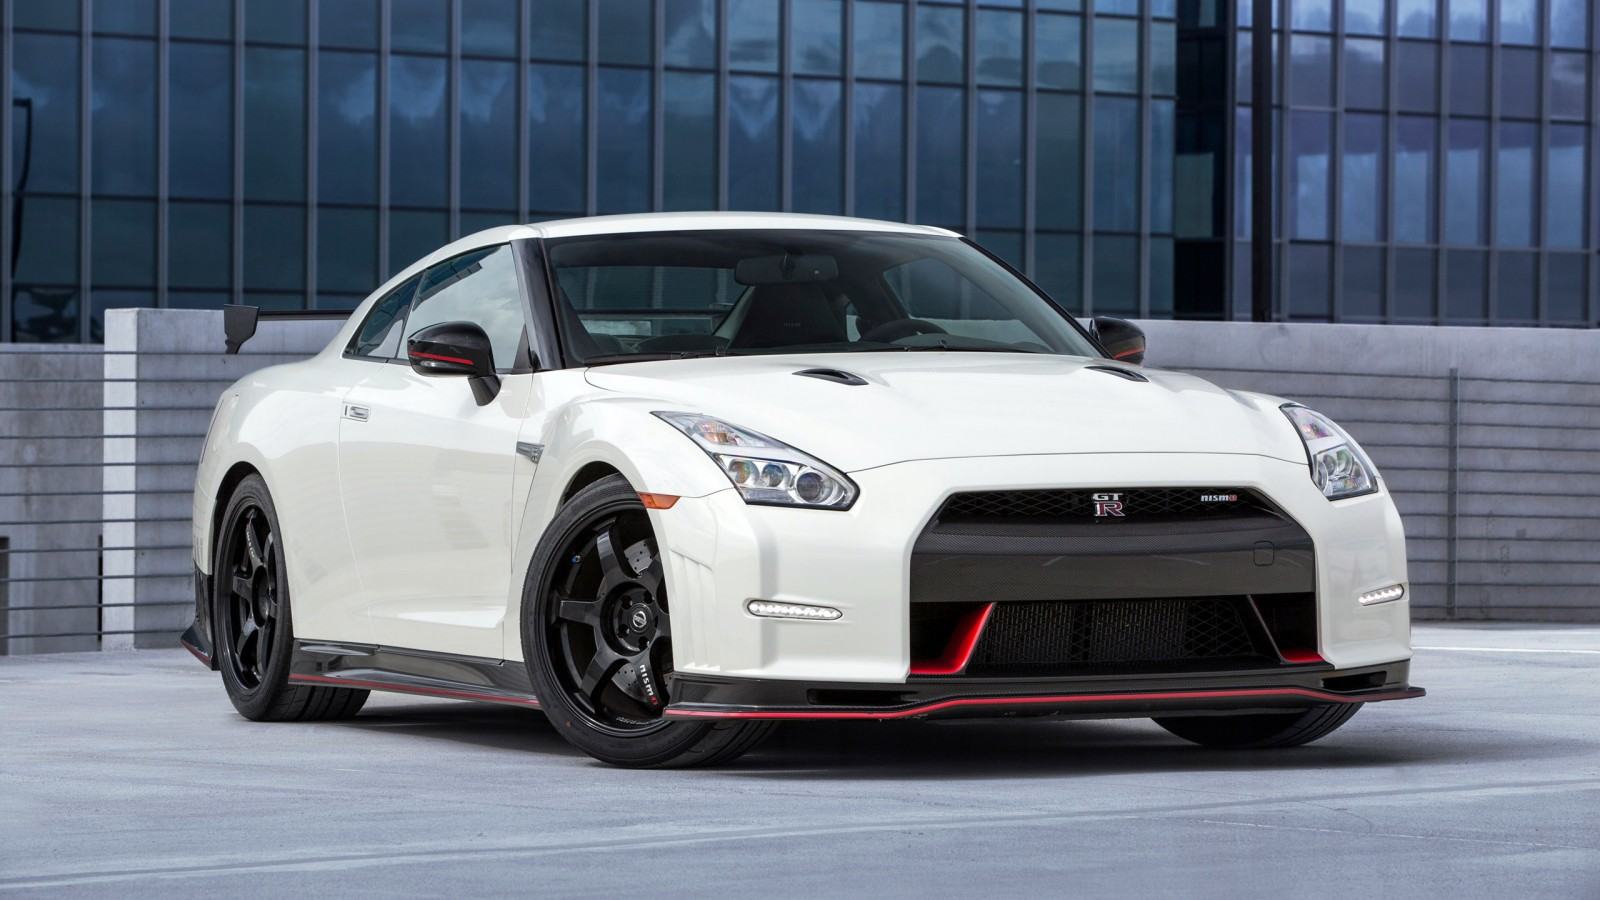 Nissan Gt R Nismo 2015 Wallpaper Hd Car Wallpapers